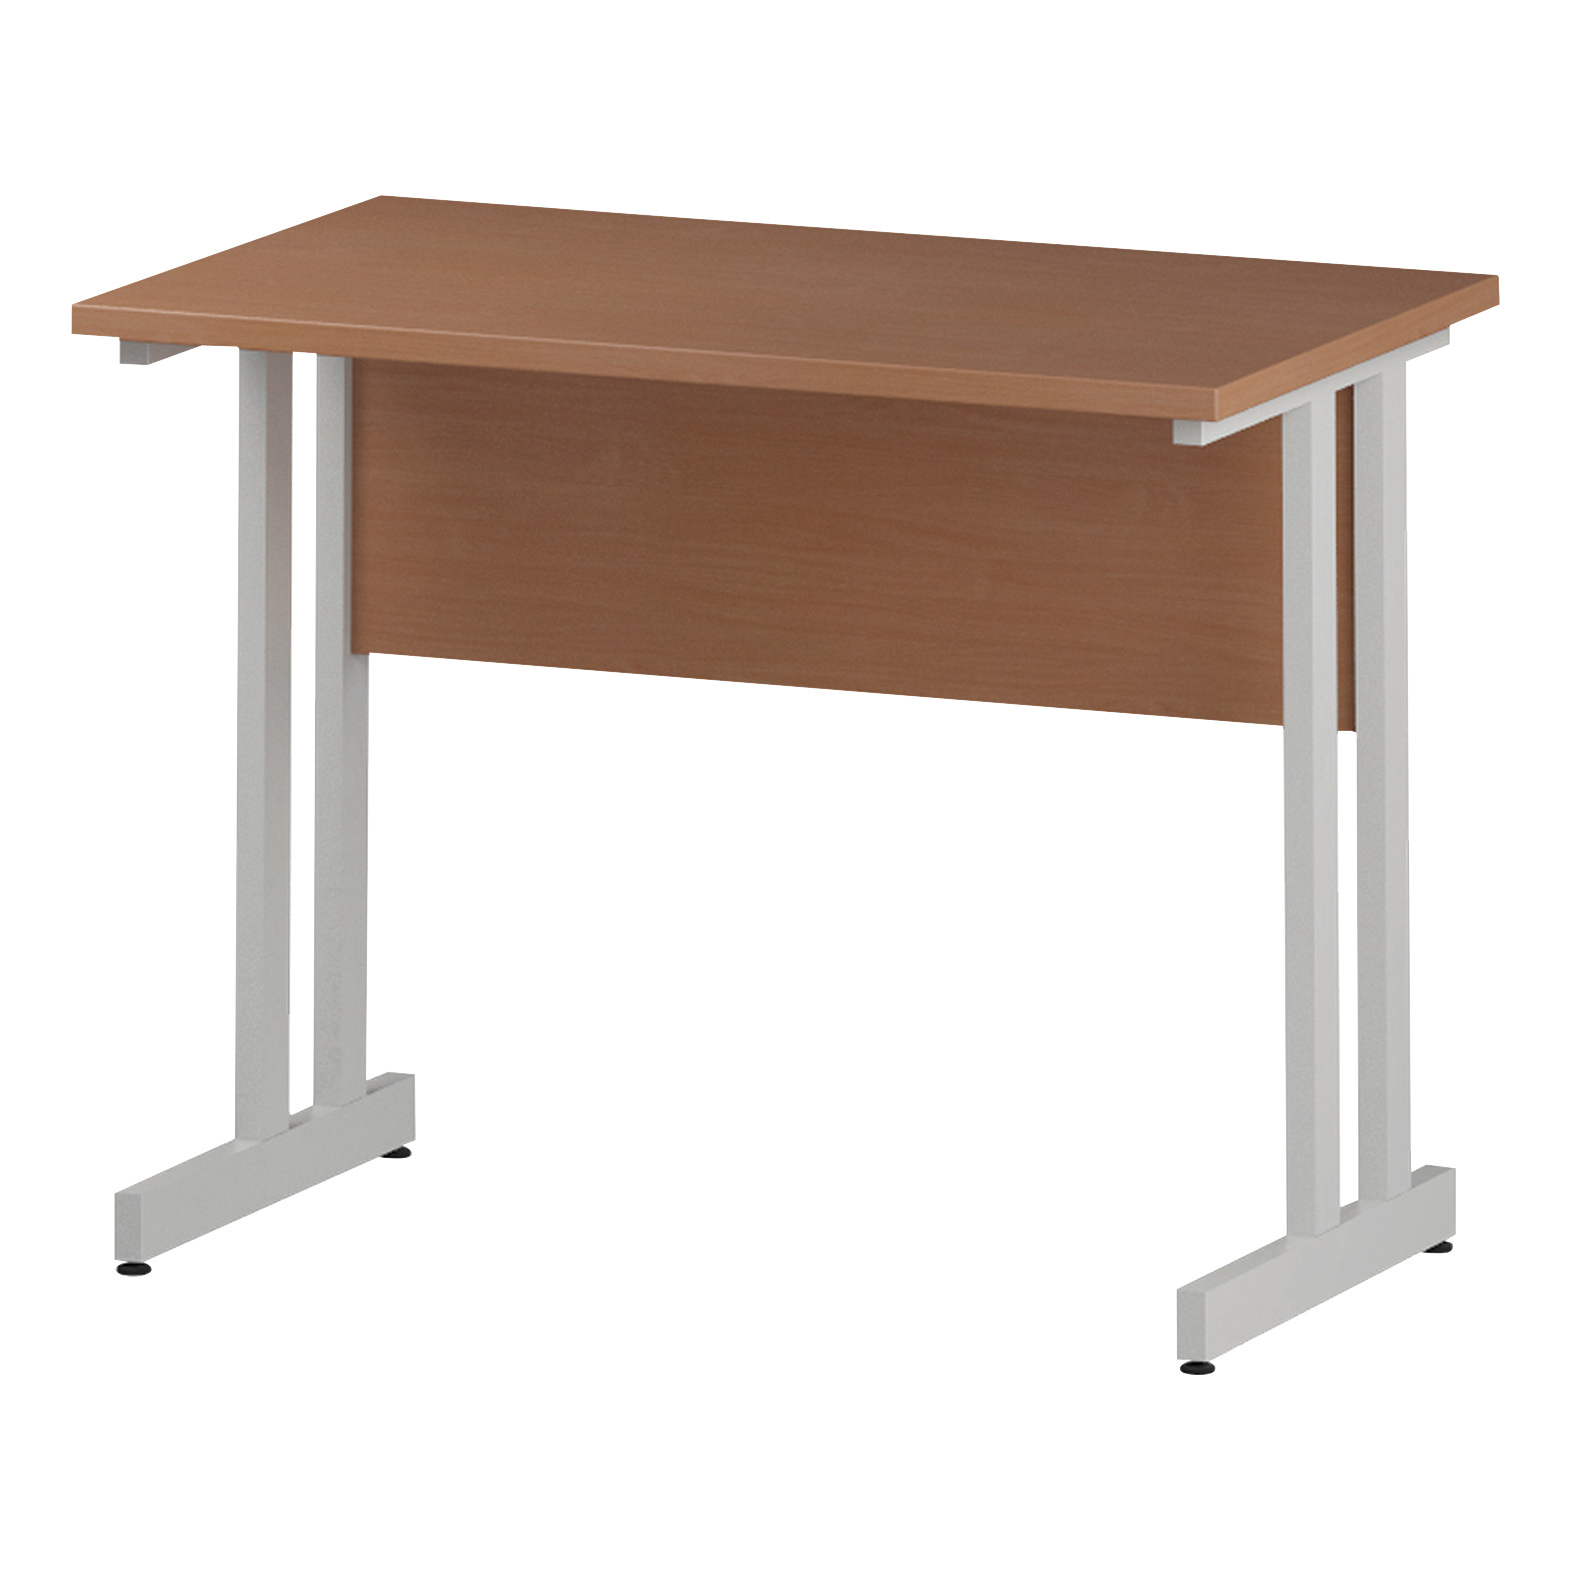 Trexus Rectangular Slim Desk White Cantilever Leg 1000x600mm Beech Ref I001683